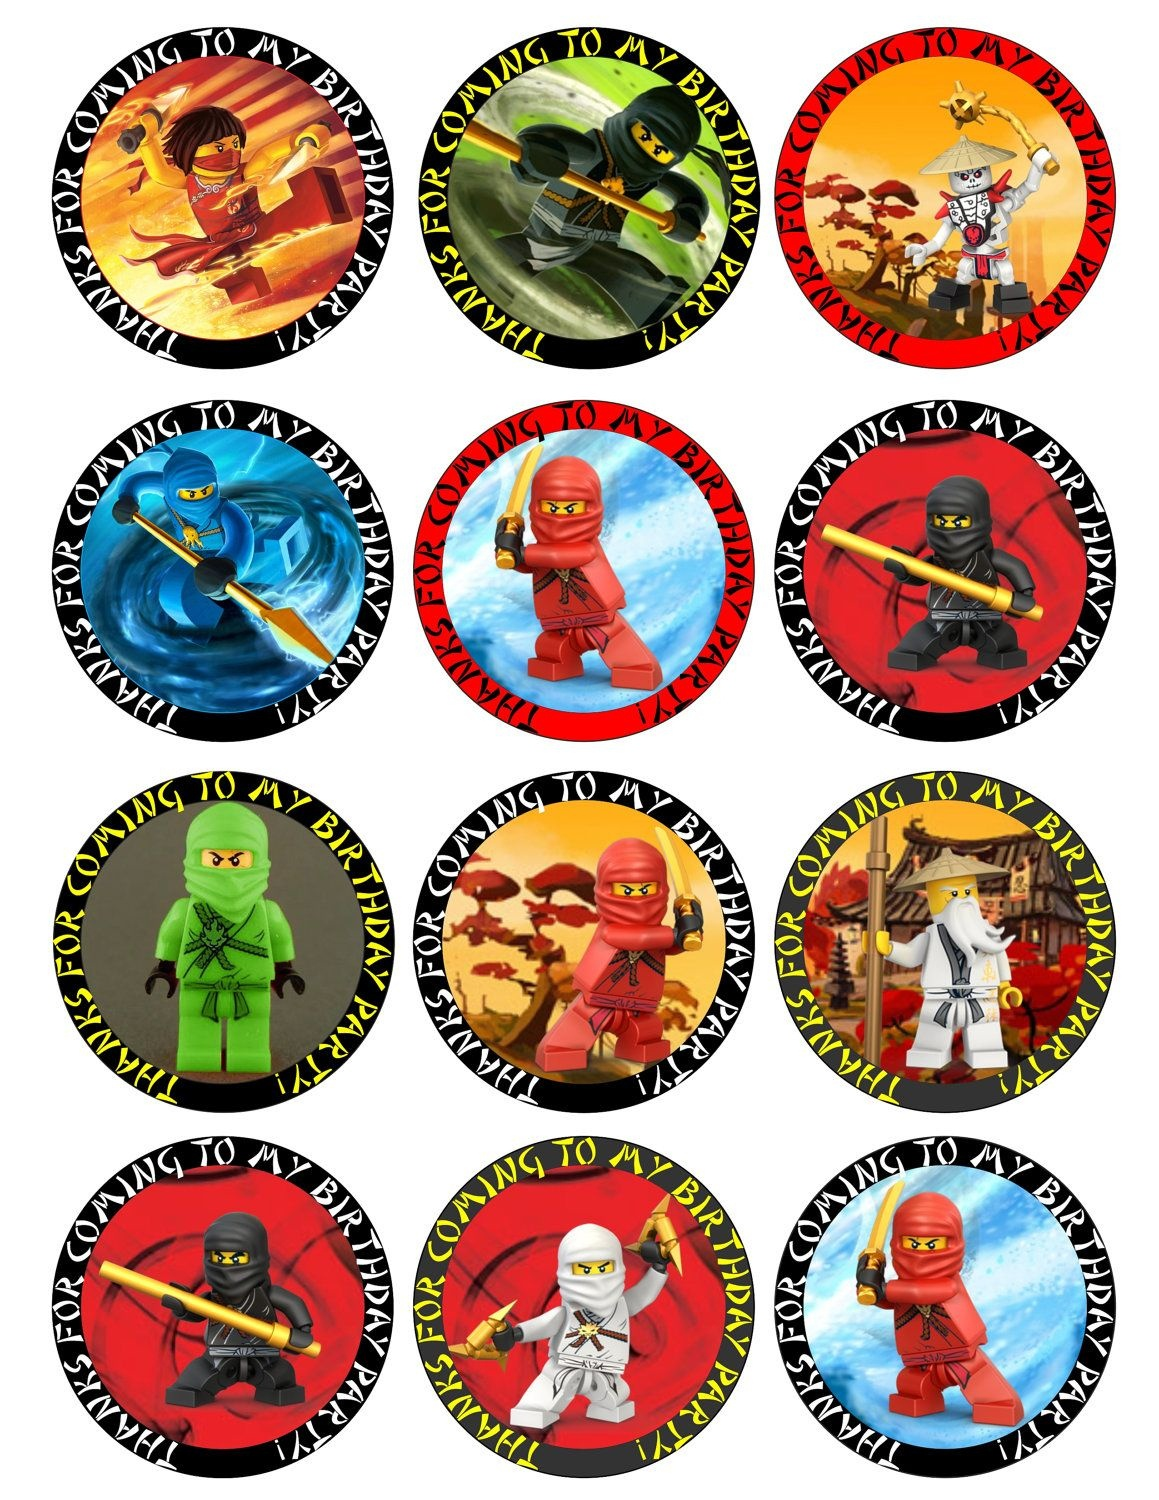 Ninjago Free Printable Toppers, Labels, Images And Invitations - Free Printable Lego Cupcake Toppers